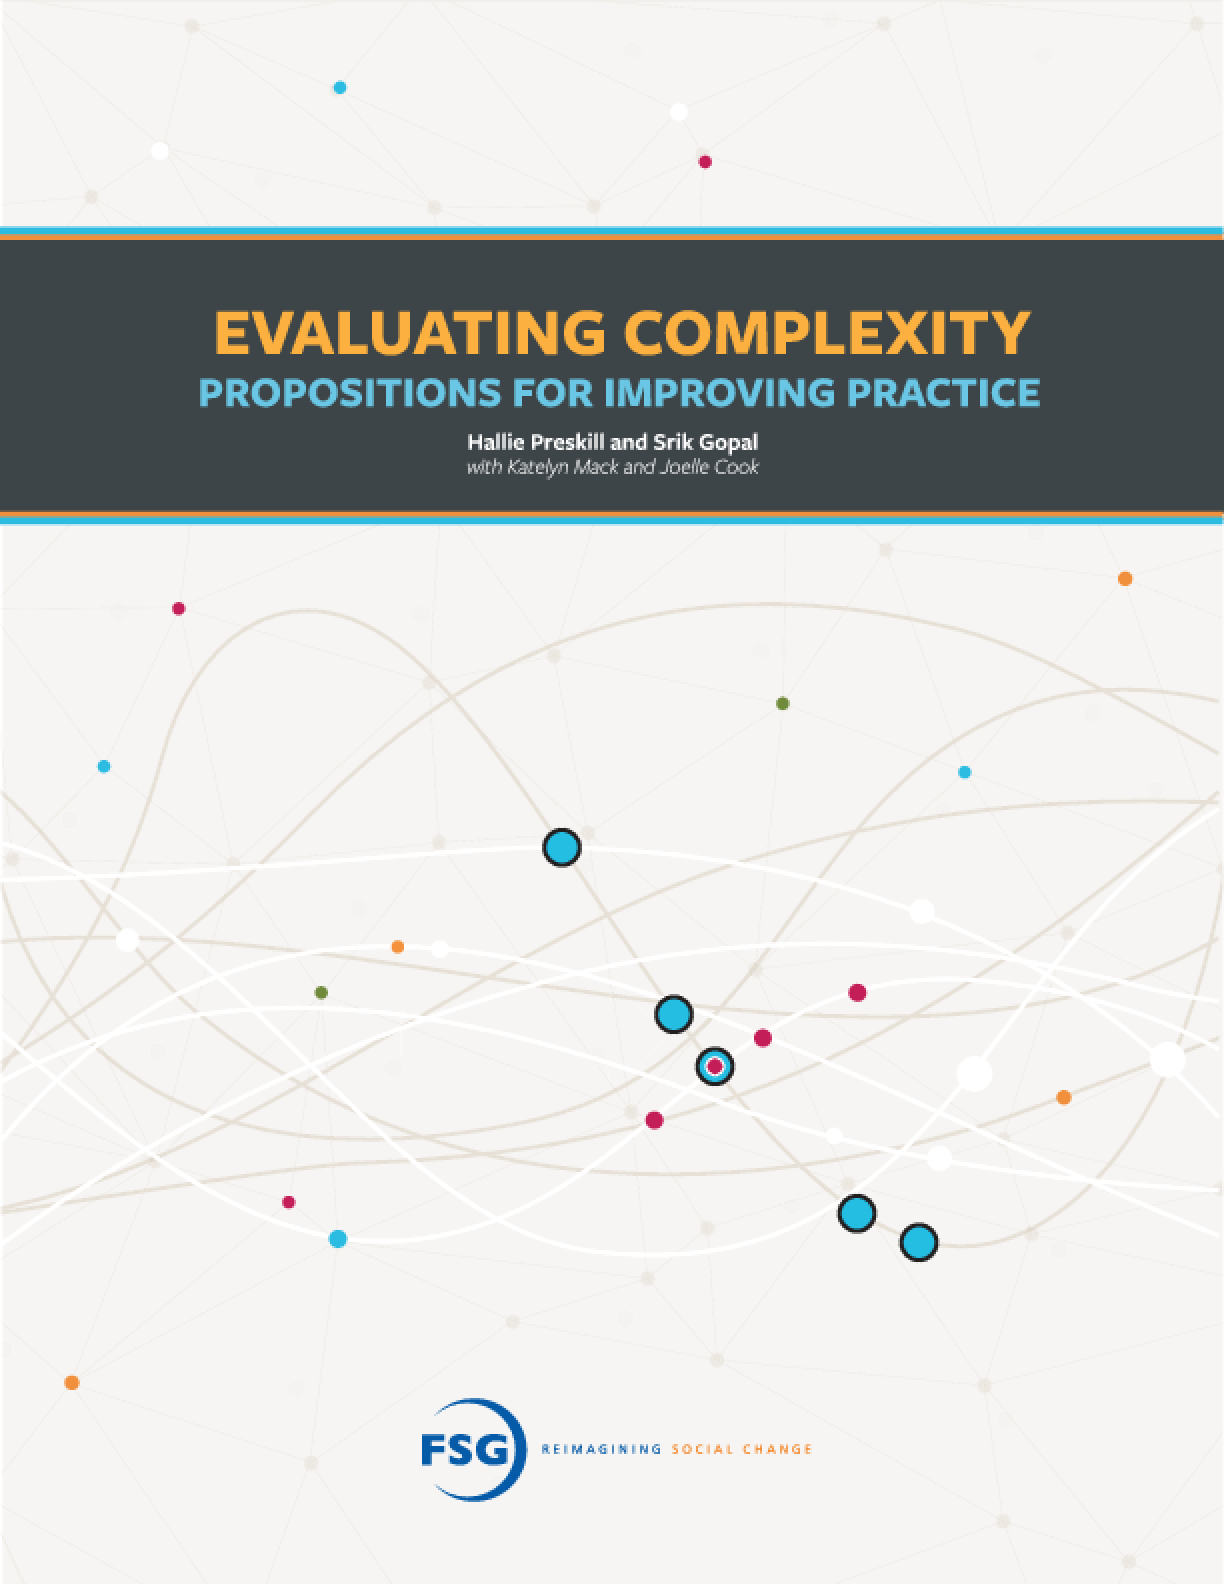 Evaluating Complexity: Propositions for Improving Practice